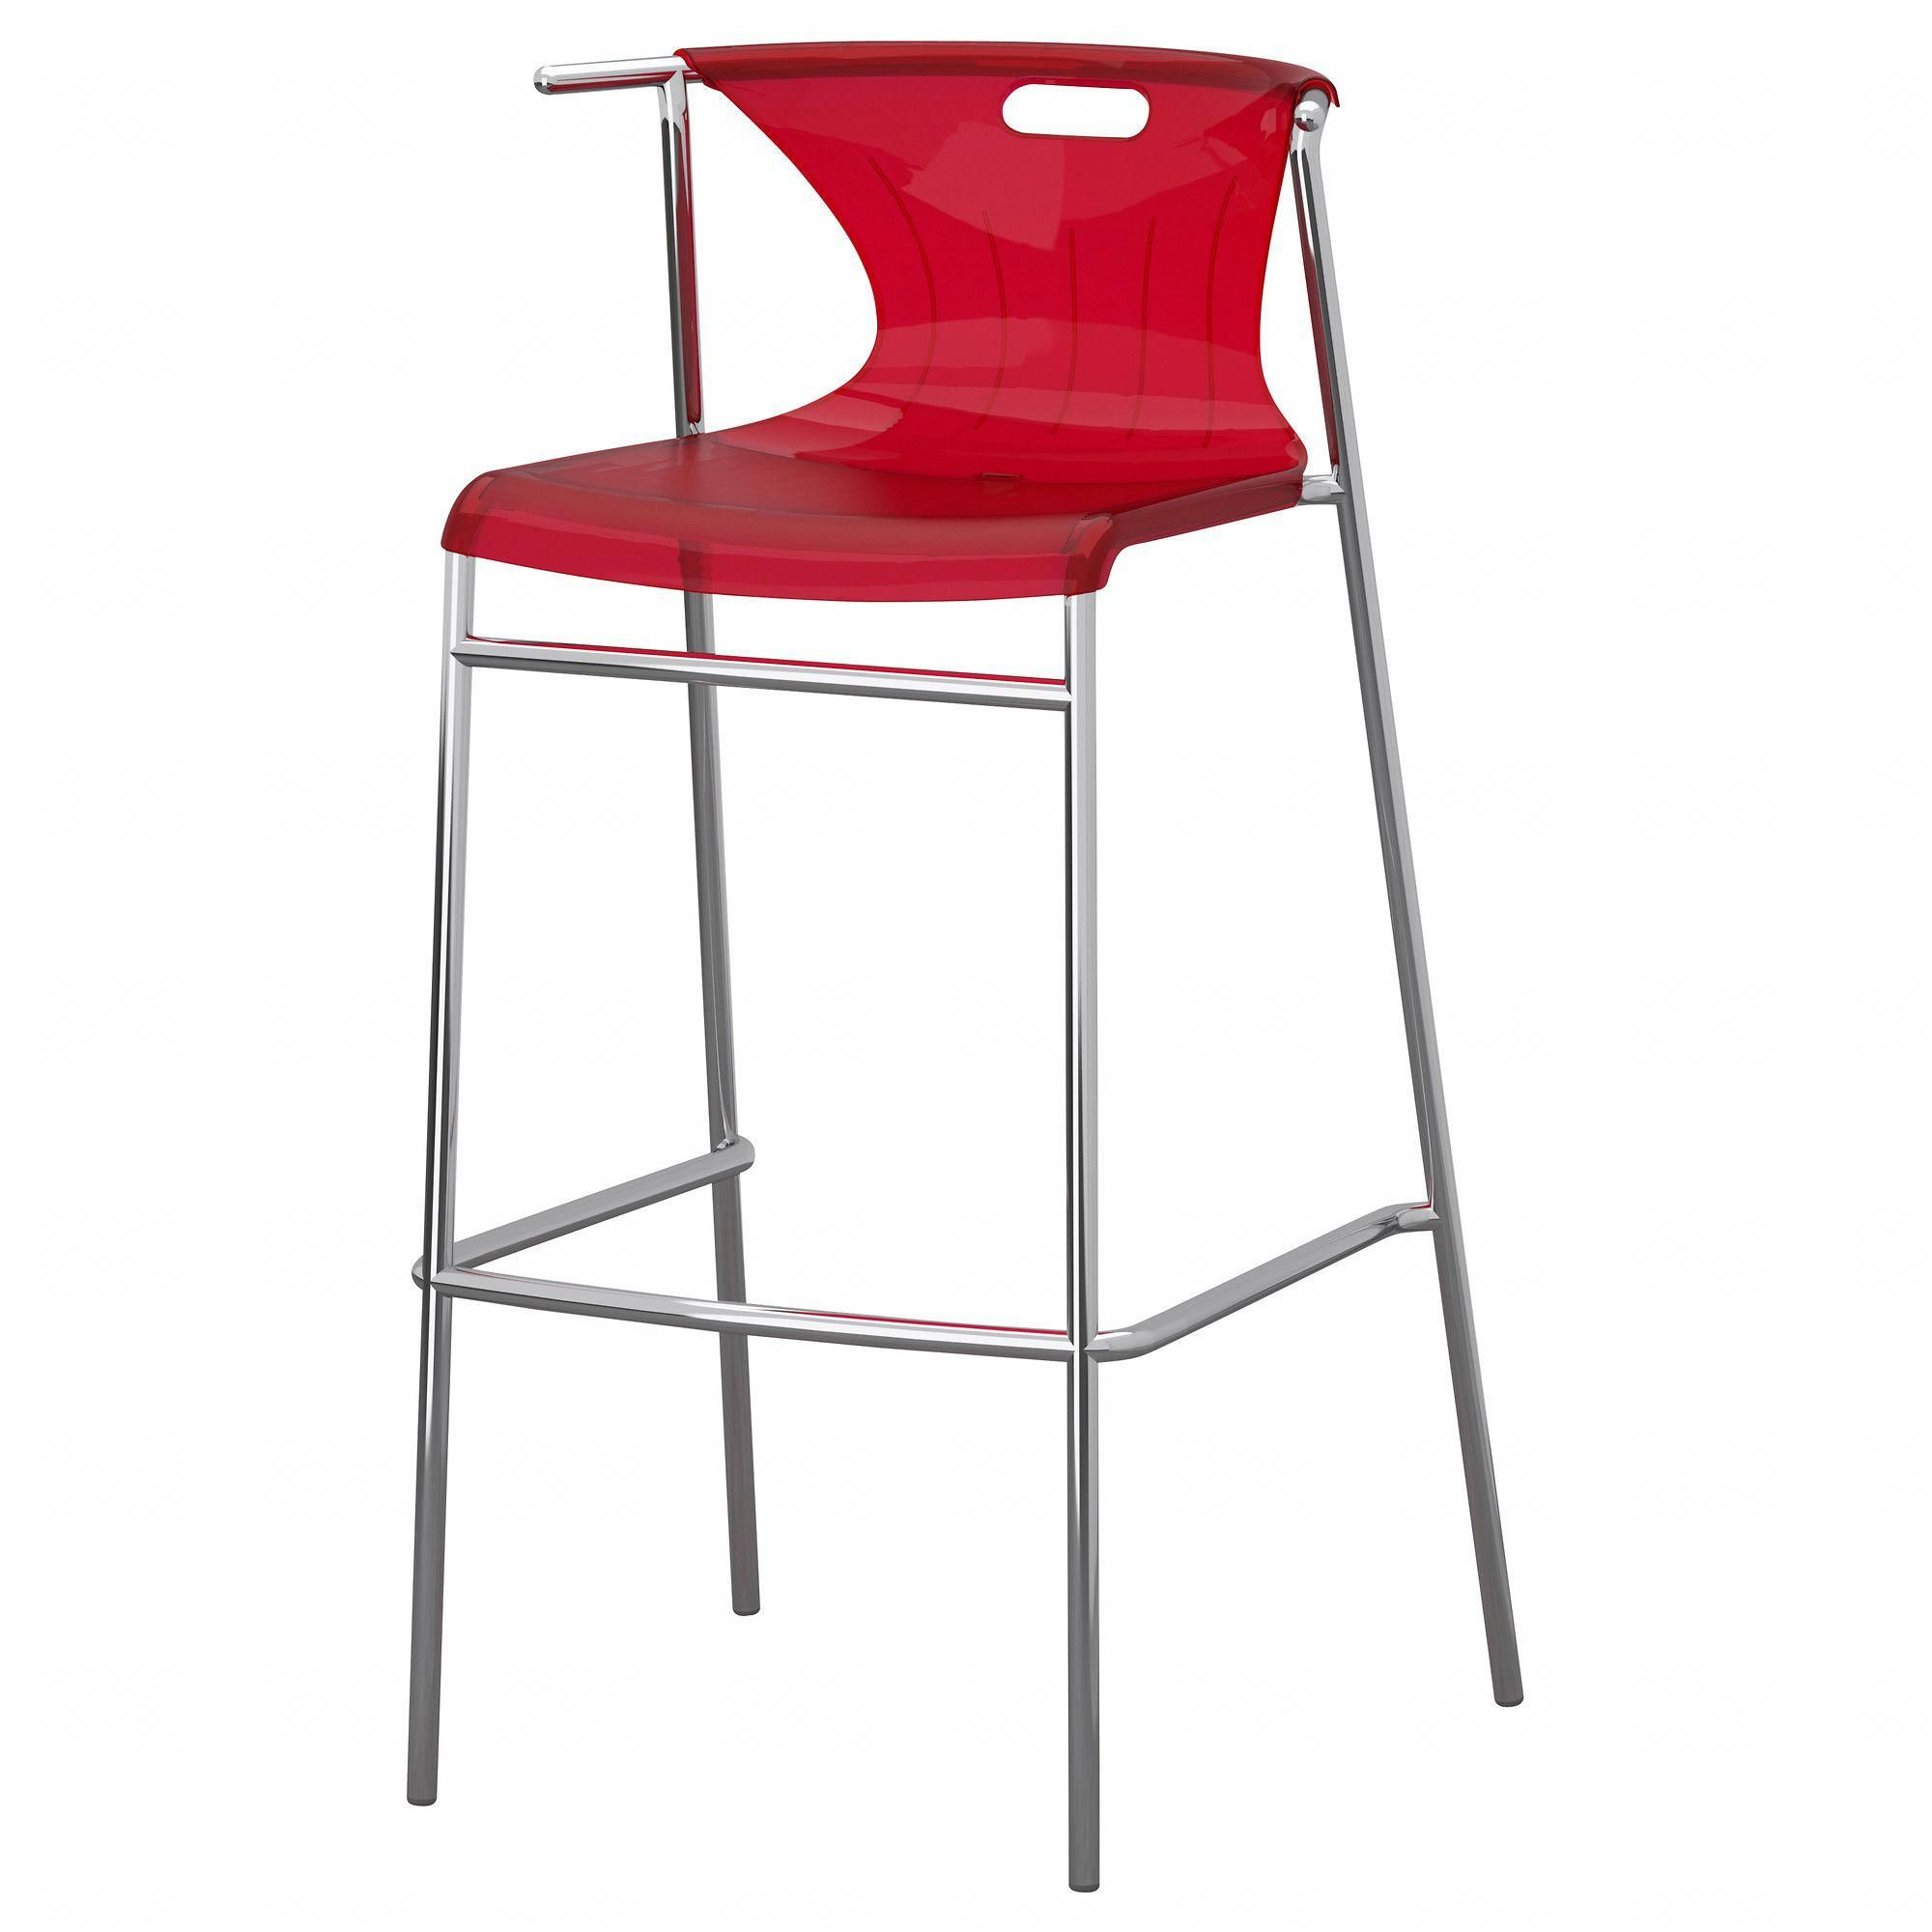 Phenomenal Elmer Bar Stool With Backrest Red Chrome Plated Cjindustries Chair Design For Home Cjindustriesco